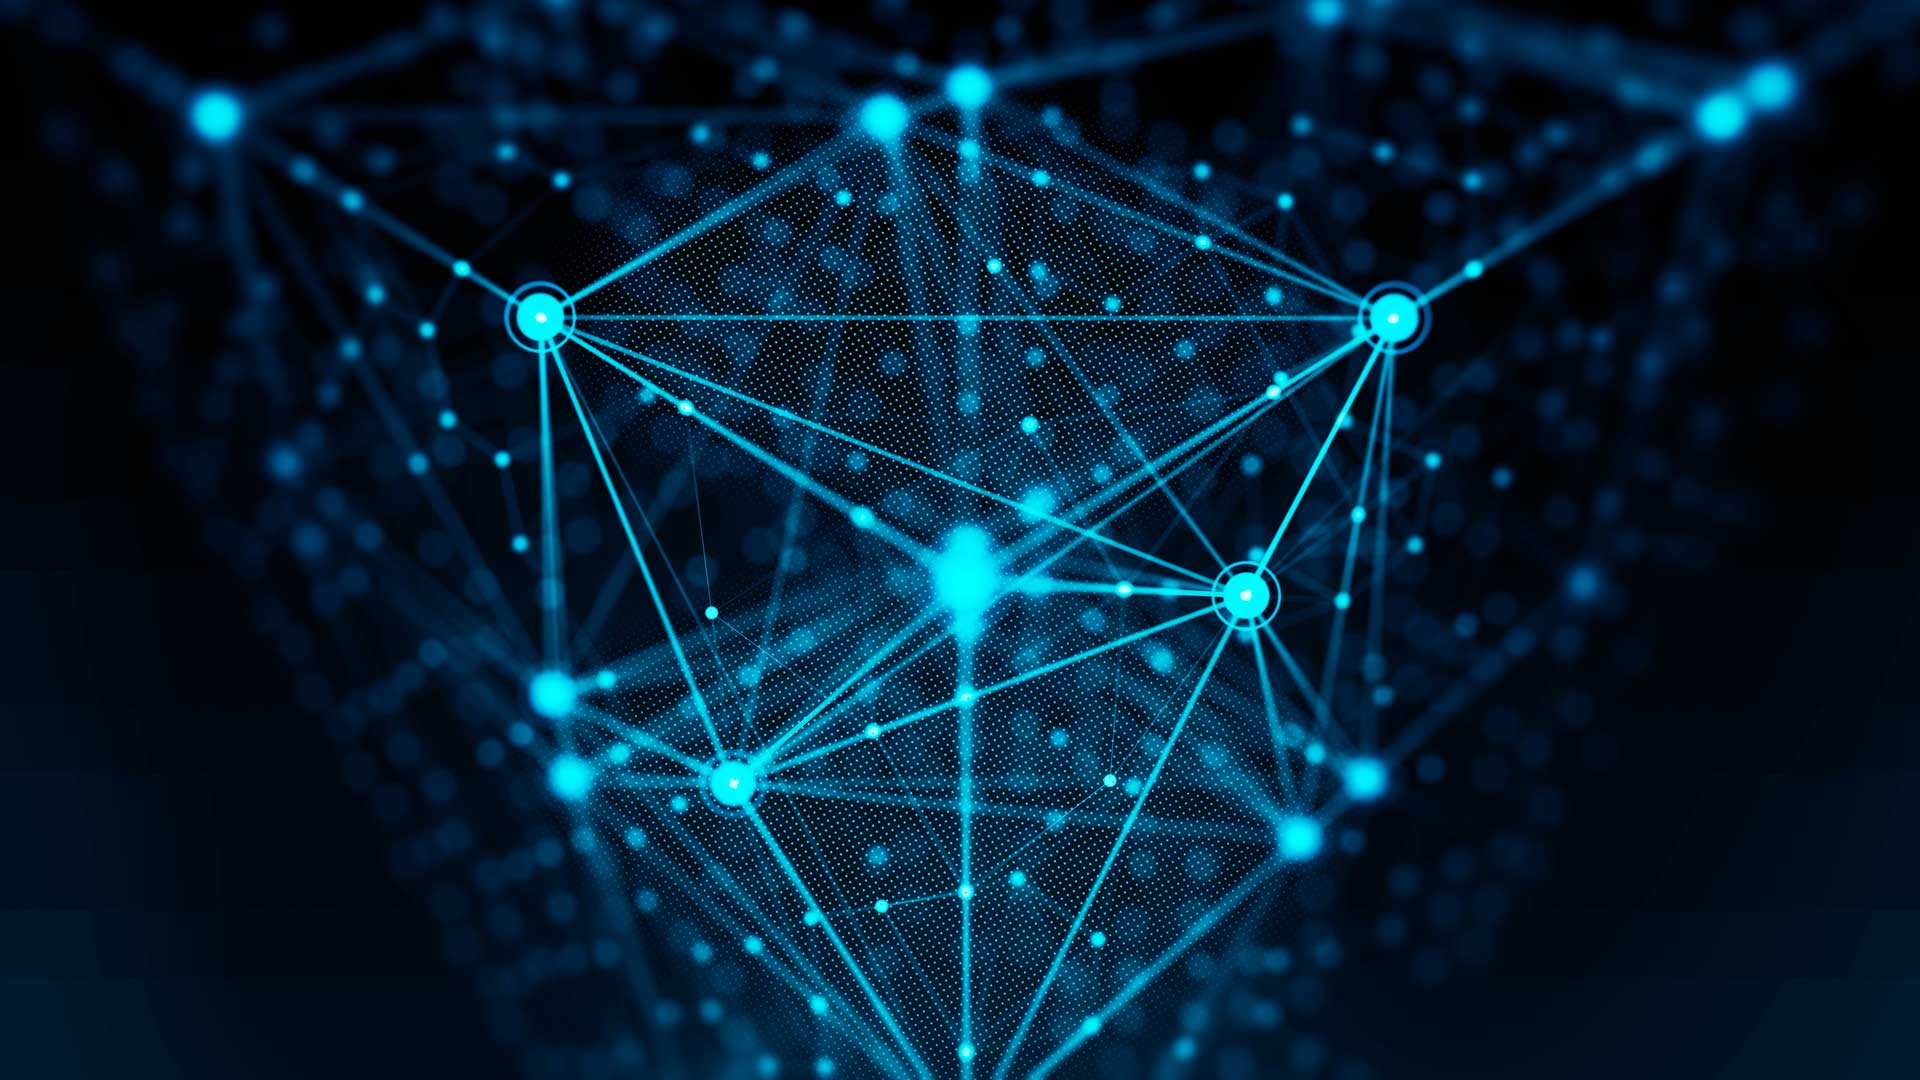 Facing Costly Data Uncertainties, the MRO Industry Adopts Blockchain Tech